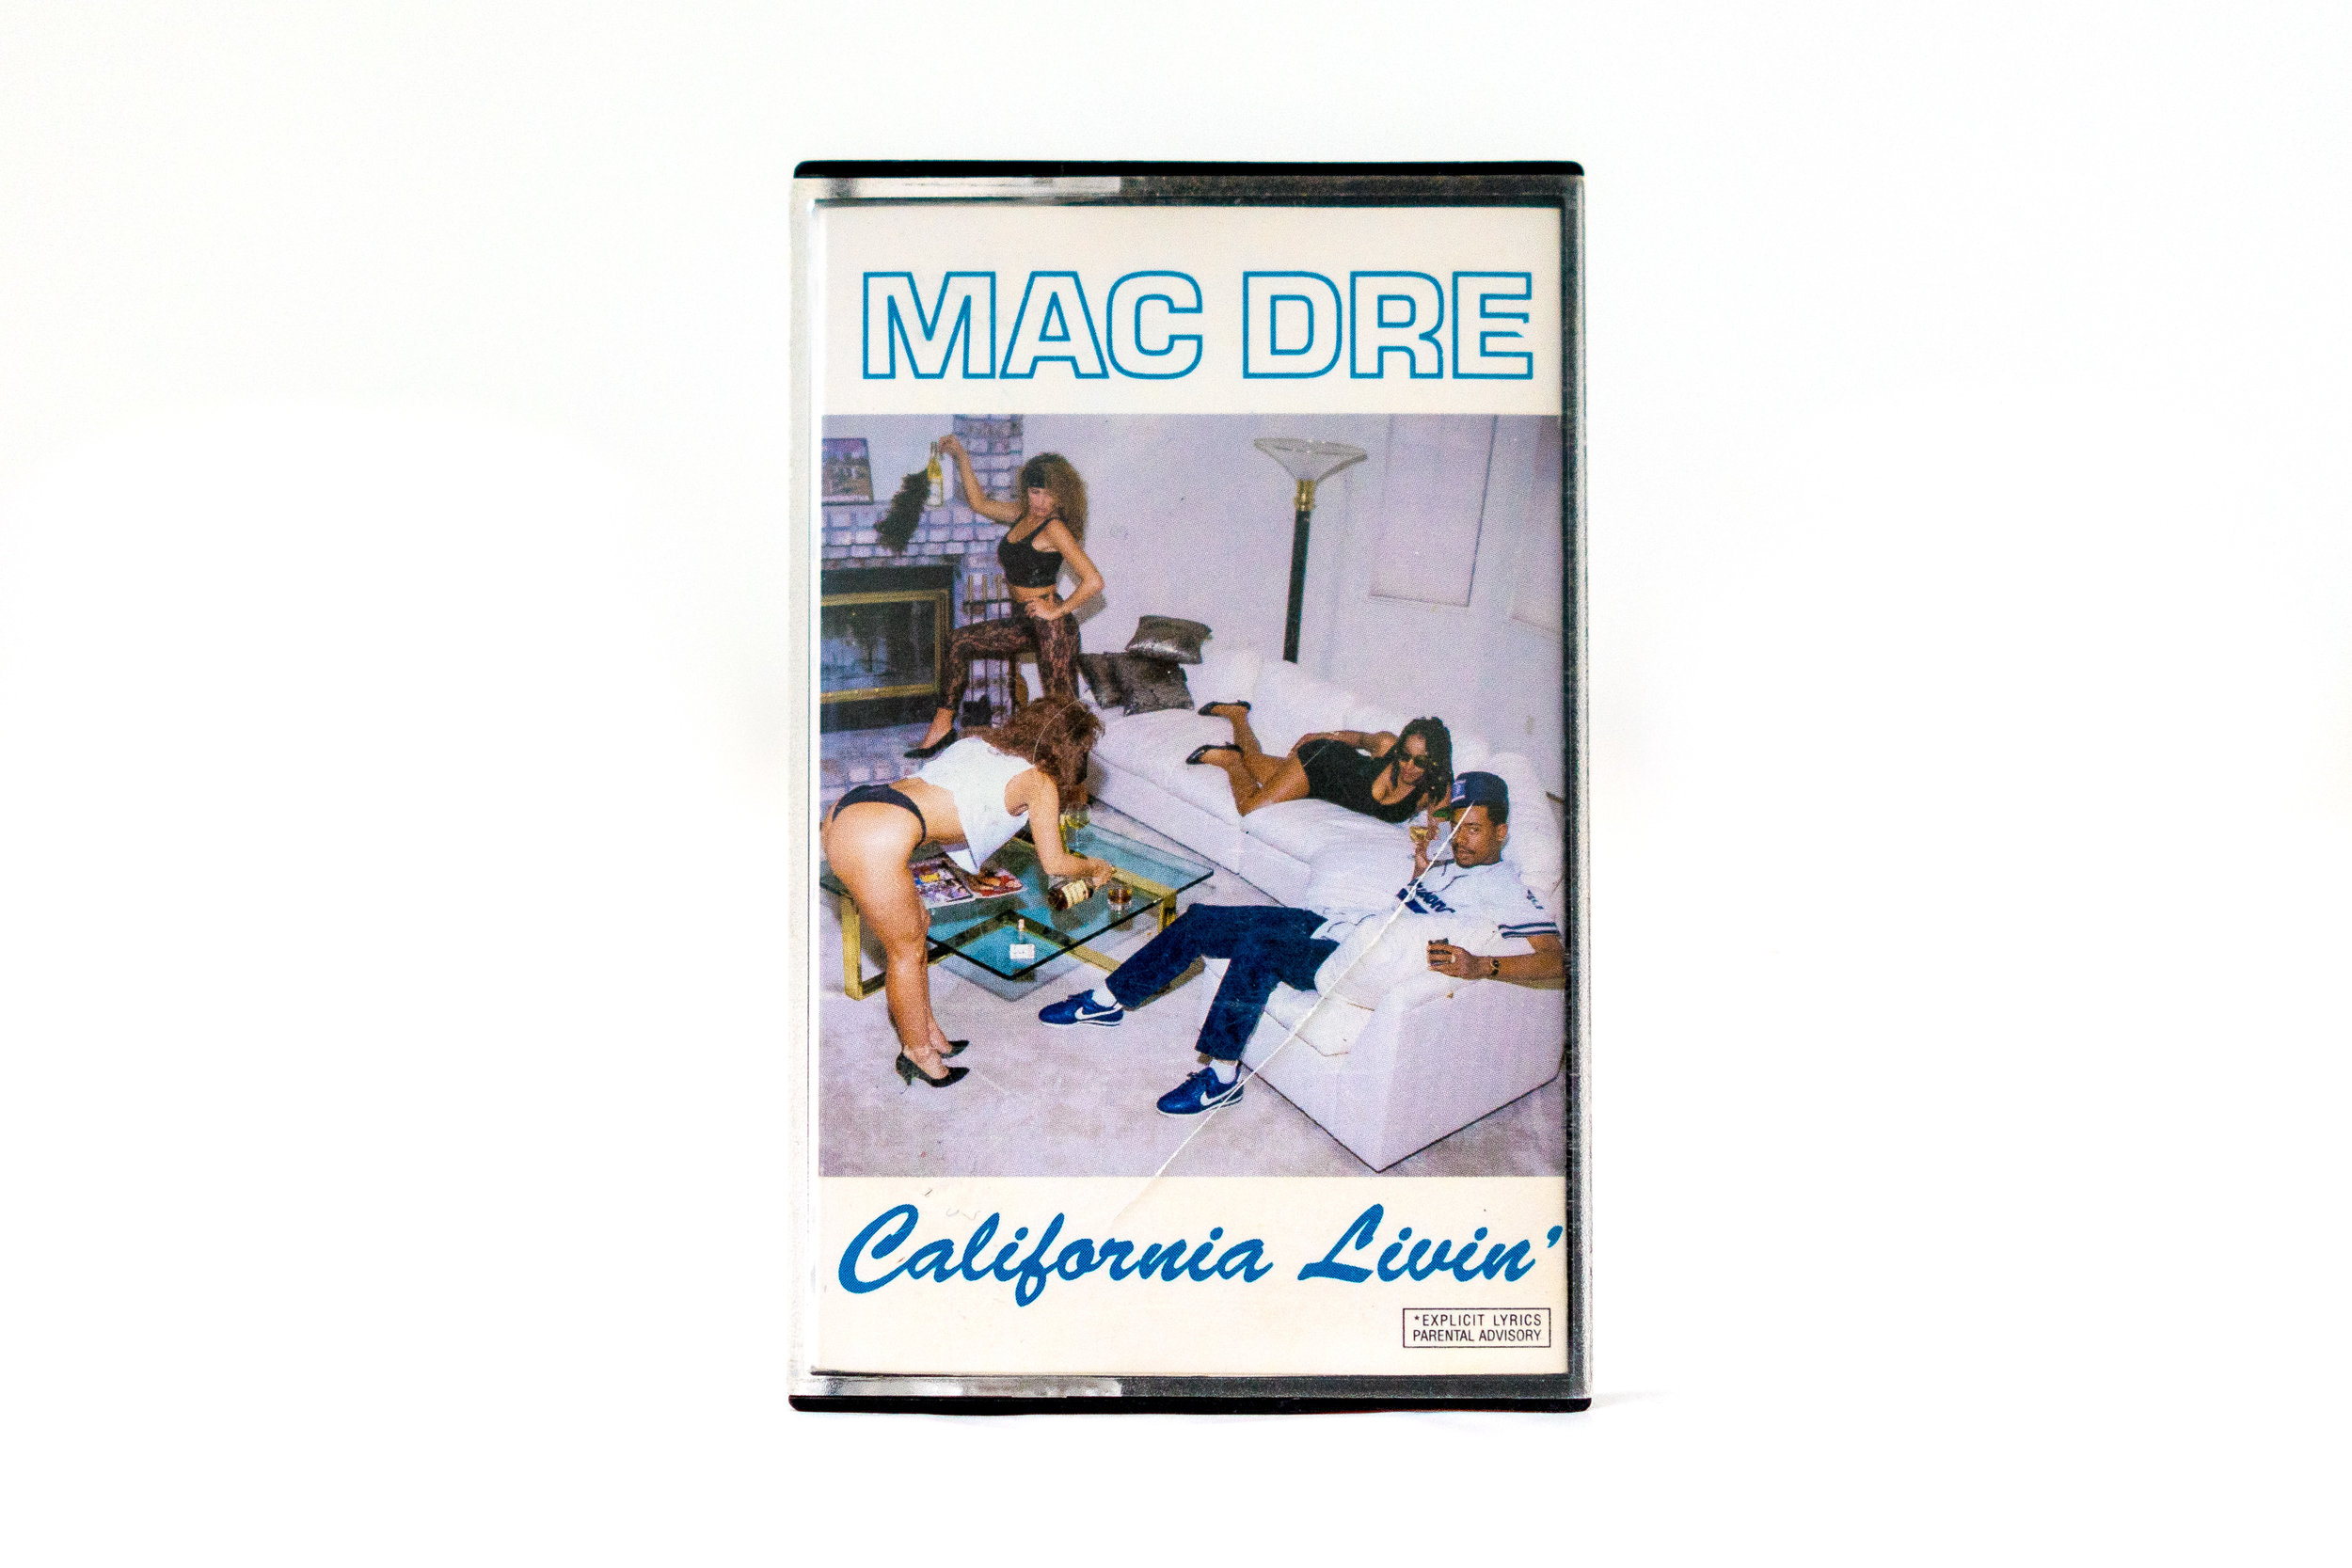 Mac_Dre_Califorina_Livin_1991 (1 of 2).jpg